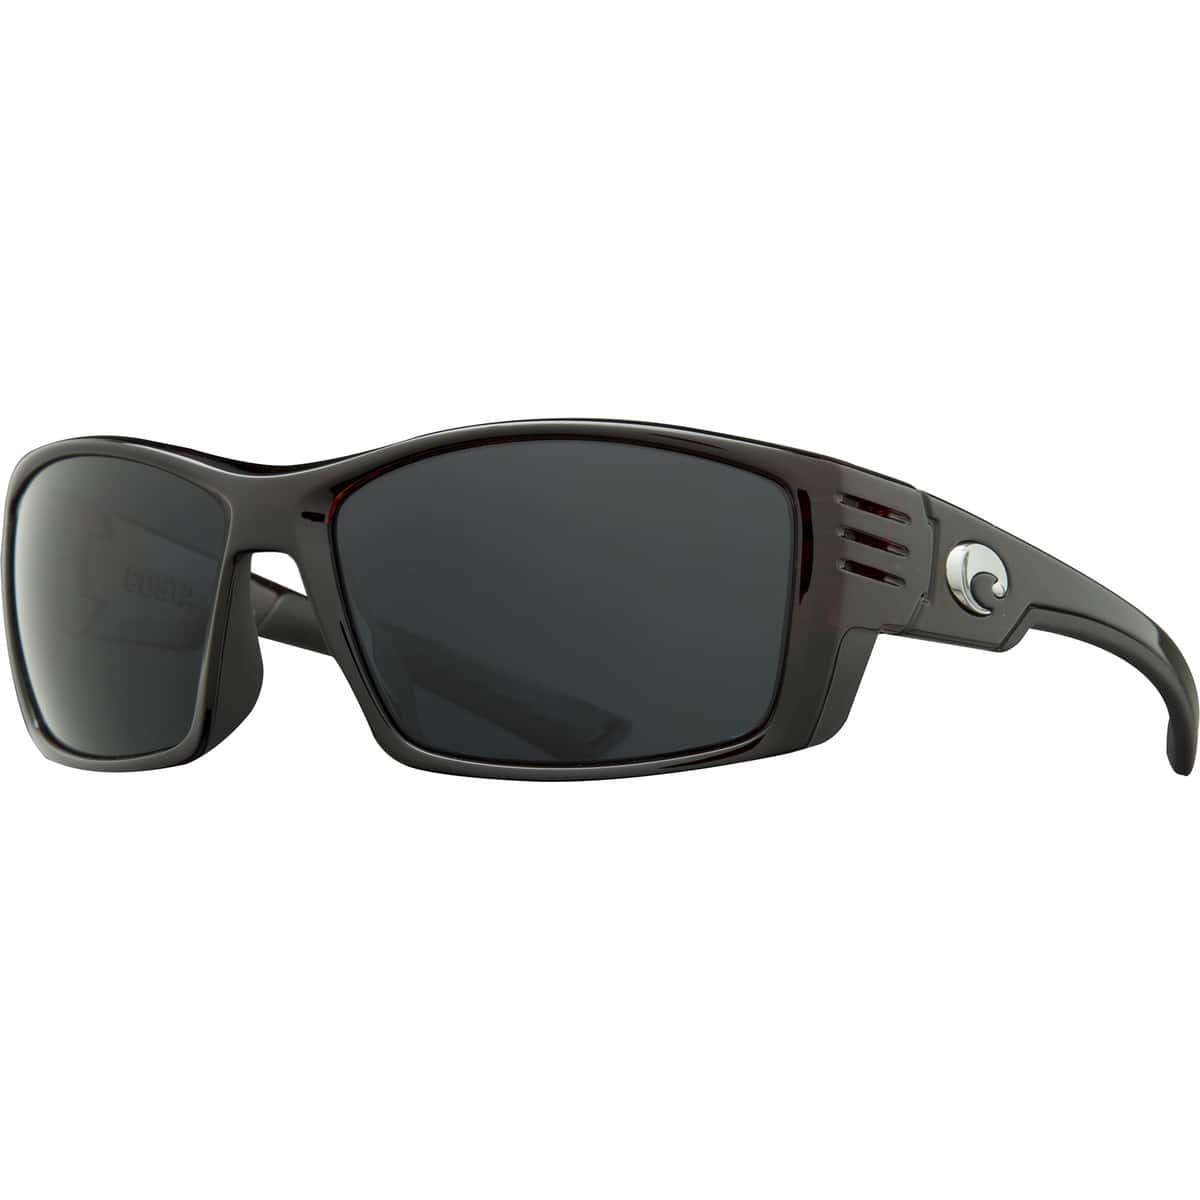 ff364837620f ... Costa Del Mar Sunglasses on Sale from as low as $67.50. Shipping is  free. Thanks hvtran4. Deal Image; Deal Image. Deal Image